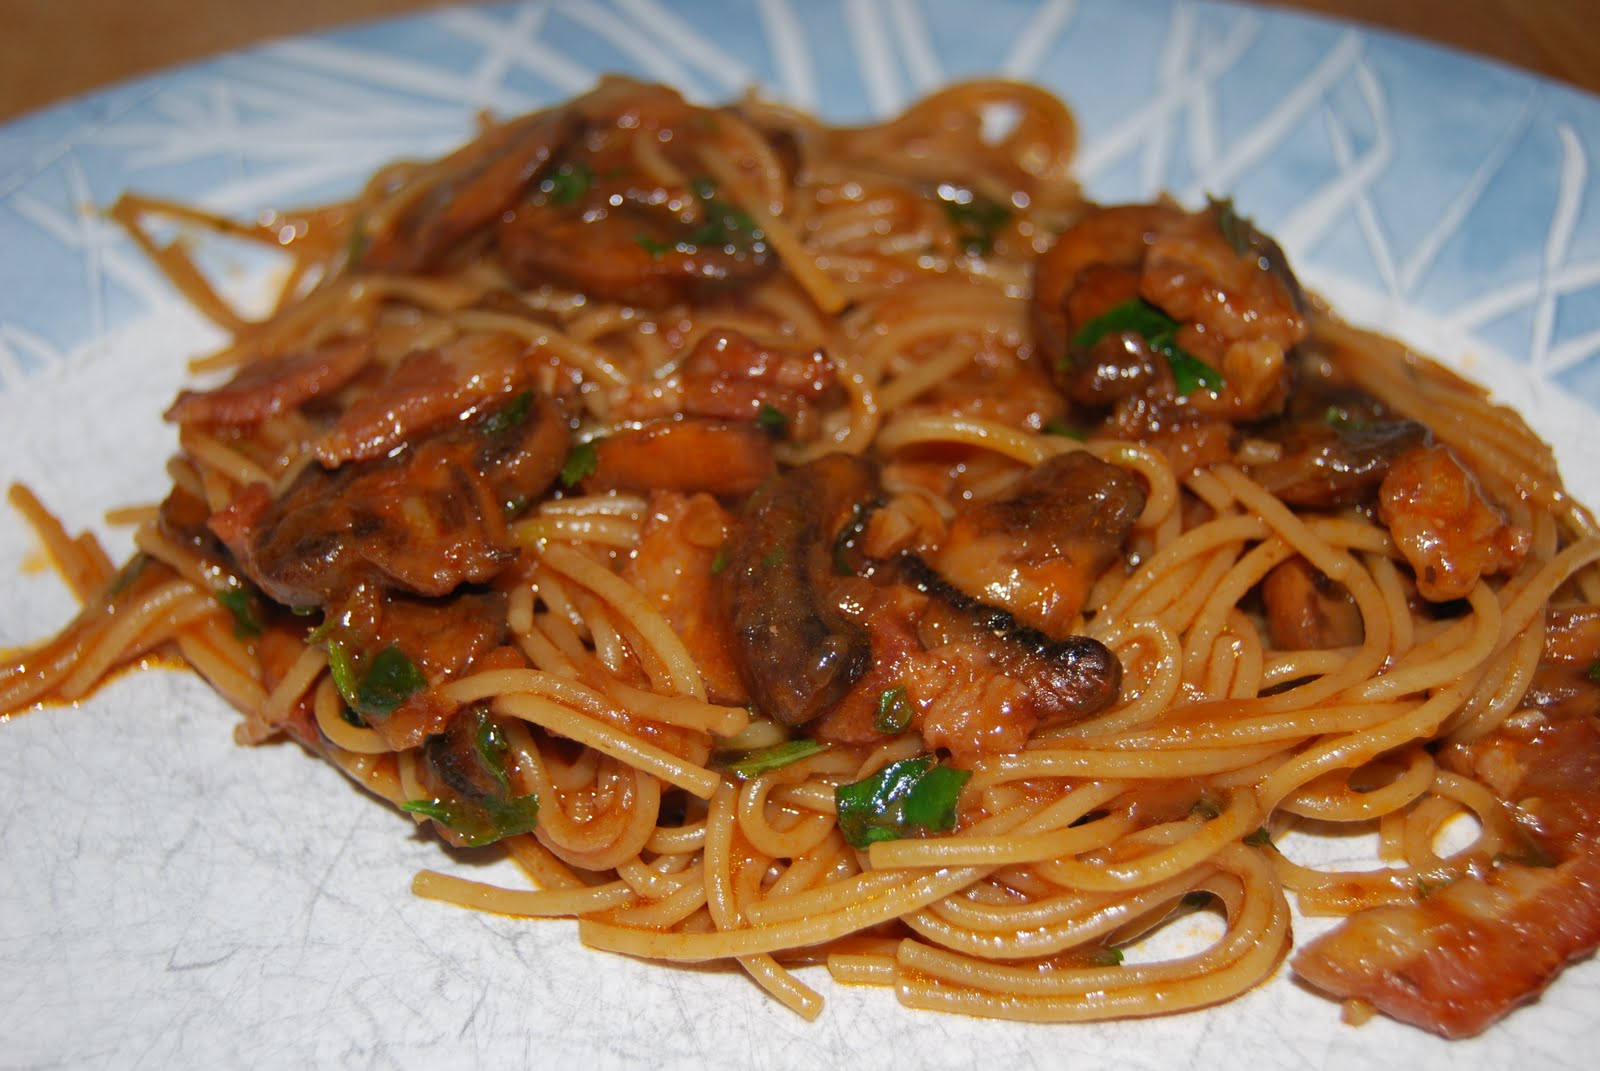 What Would Jeanna Cook: Spaghetti with Bacon, Mushrooms, & Herbs